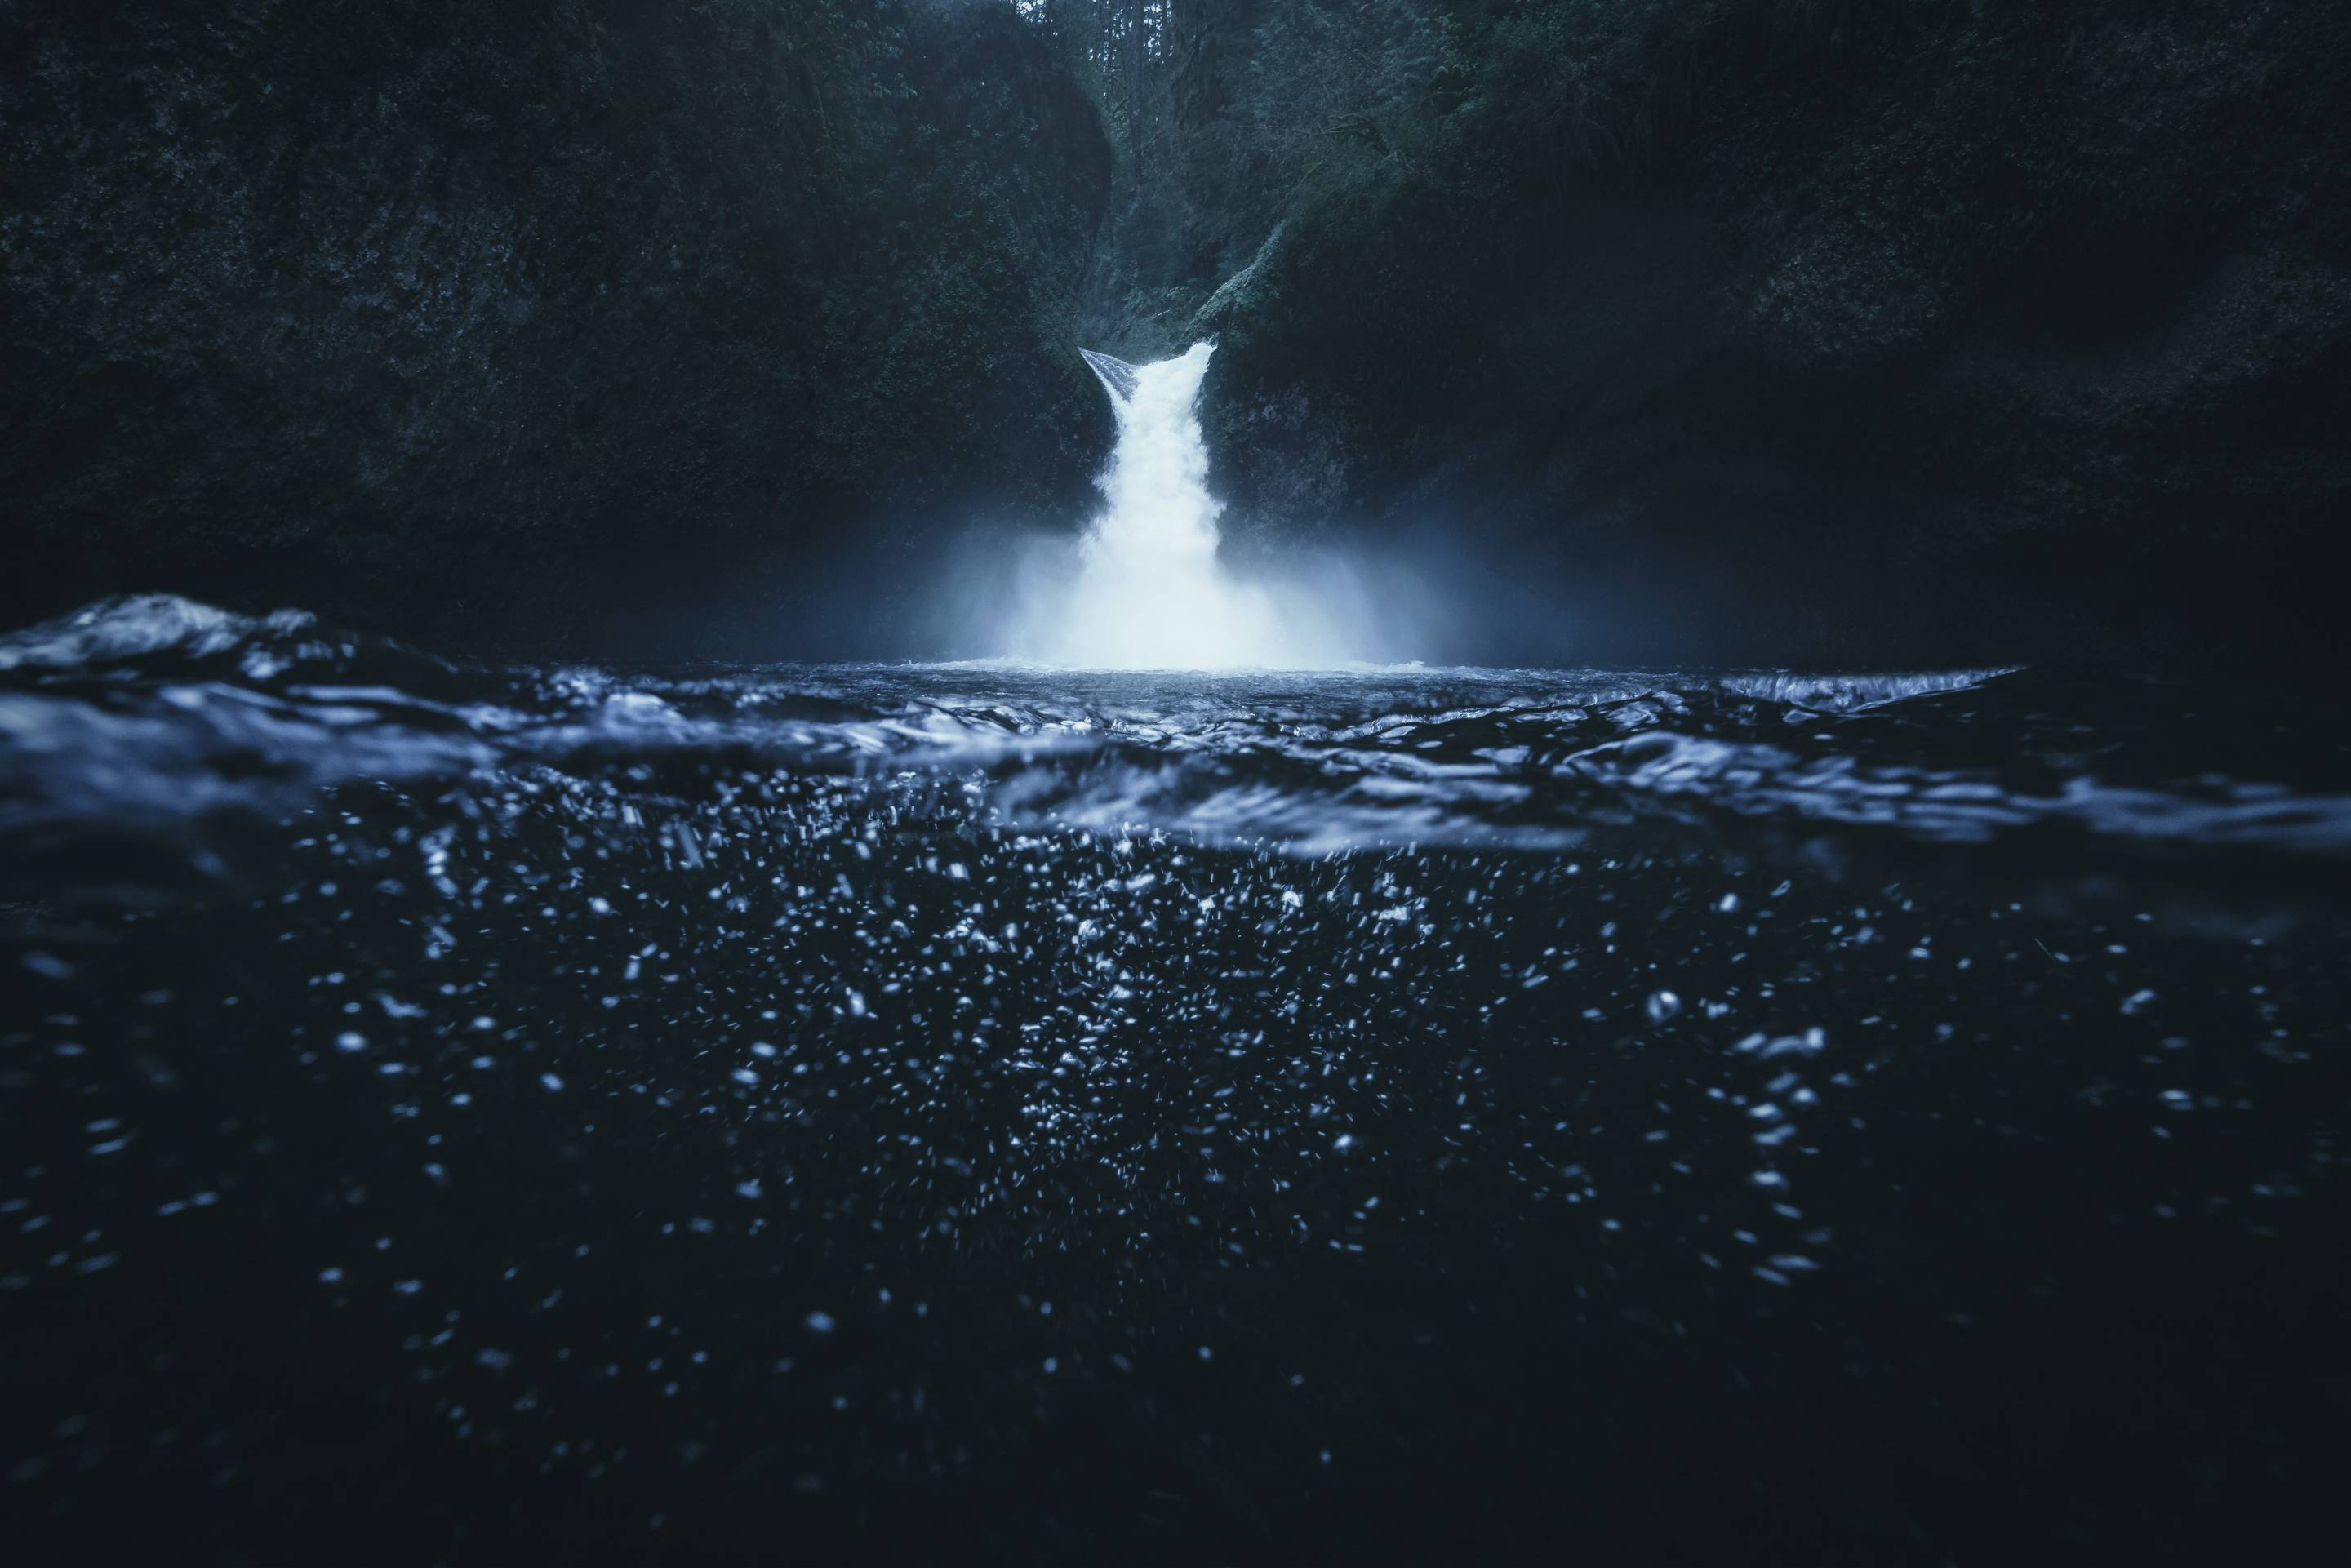 Underwater photography of Punchbowl waterfall in the Columbia River Gorge, Oregon